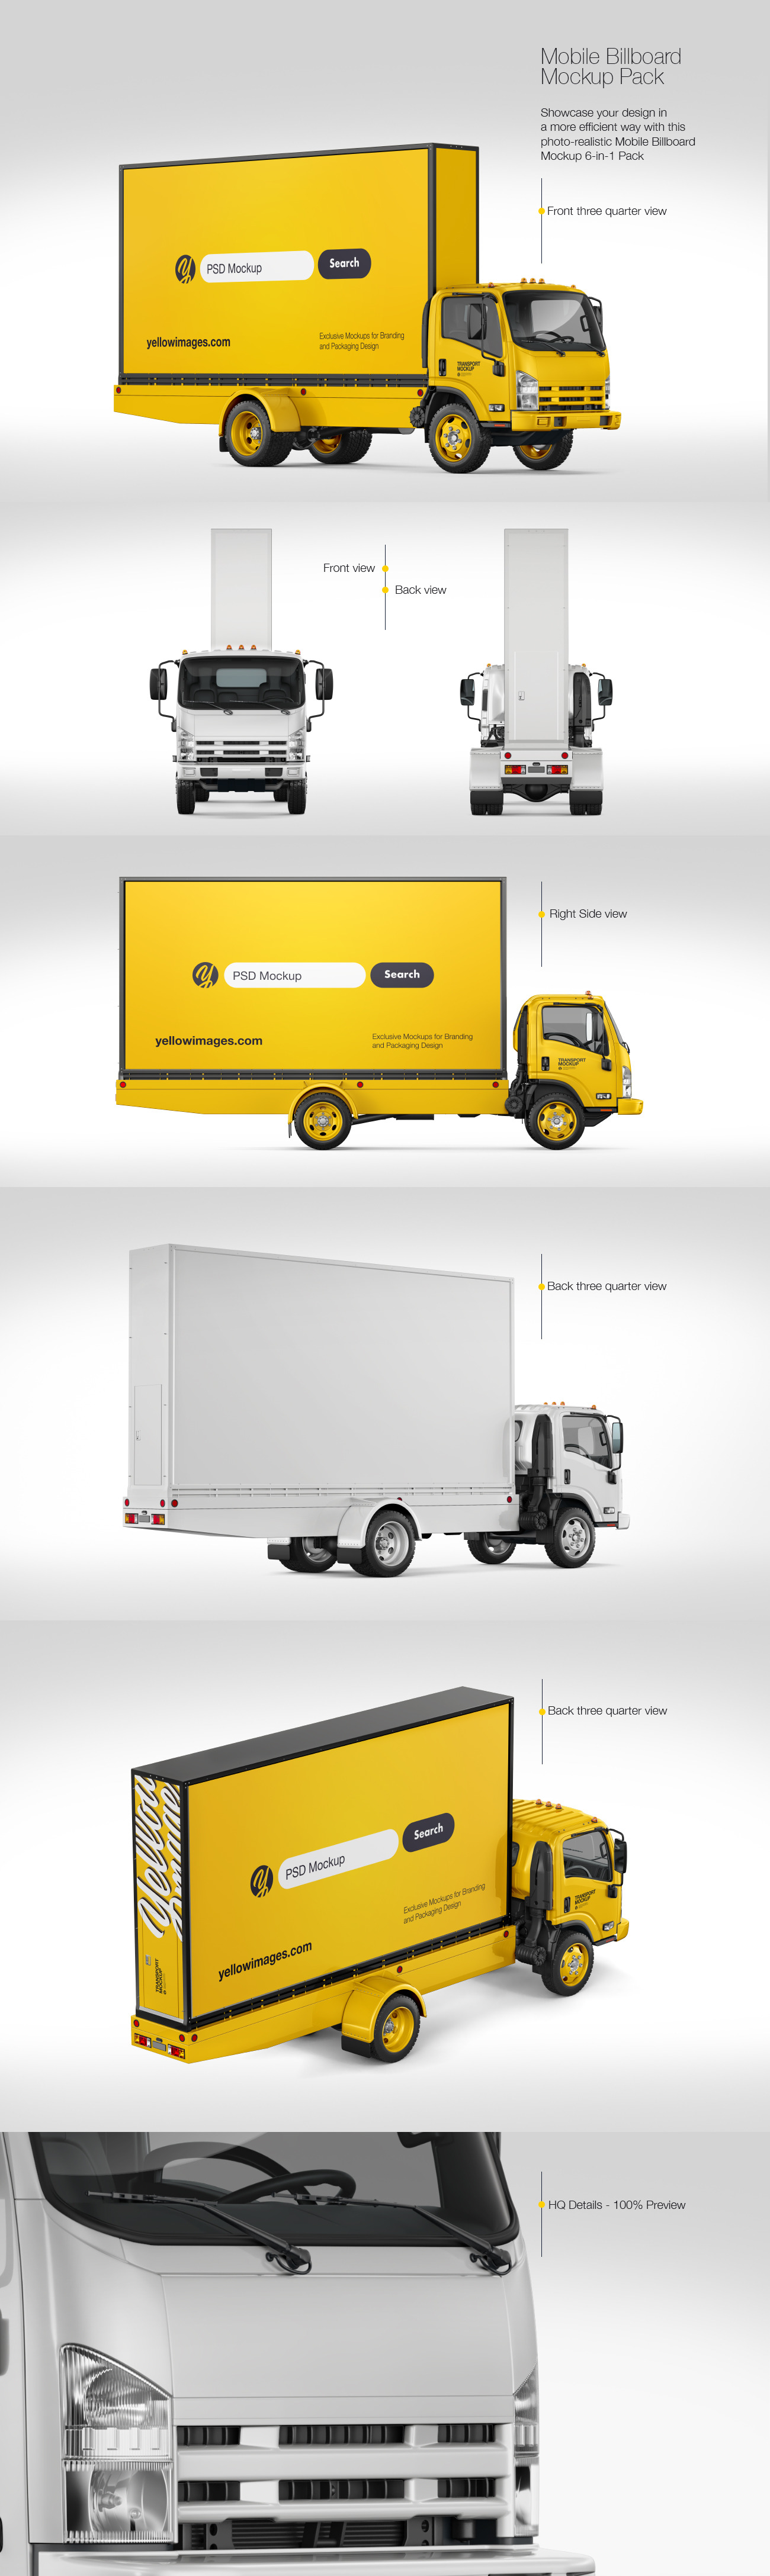 Mobile Billboard Mockup Pack